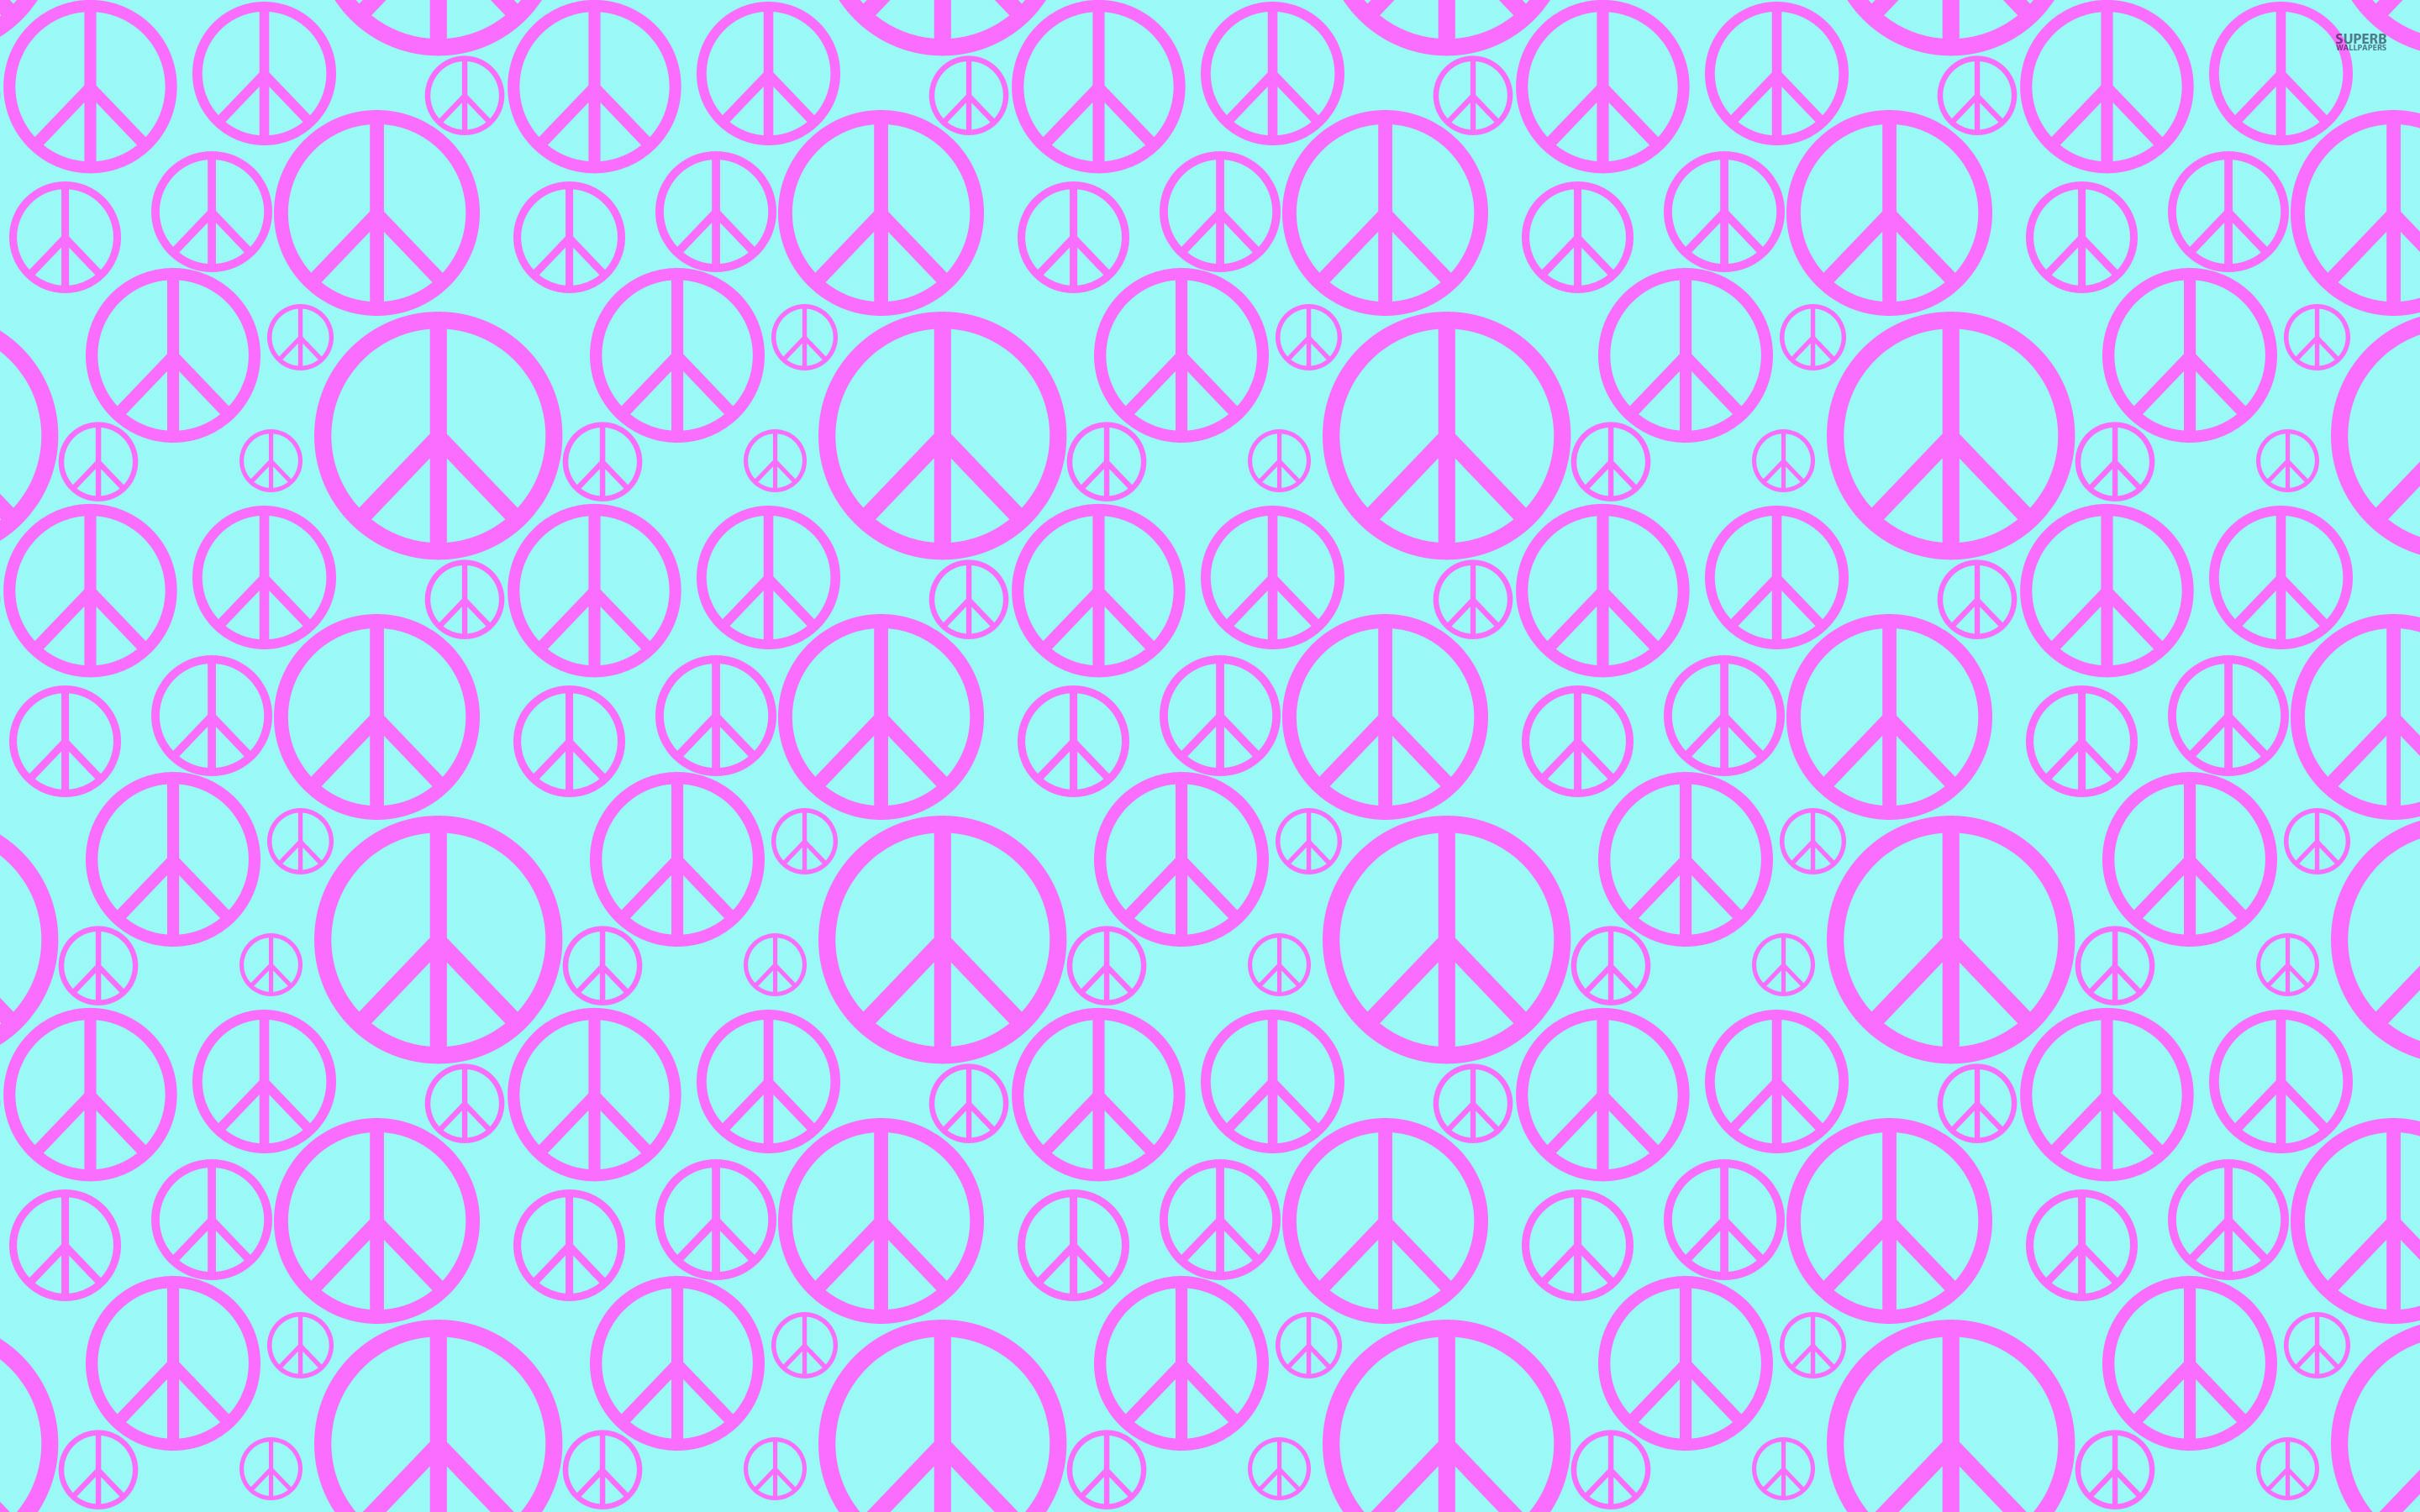 Peace Sign Backgrounds Peace symbol pattern wallpaper